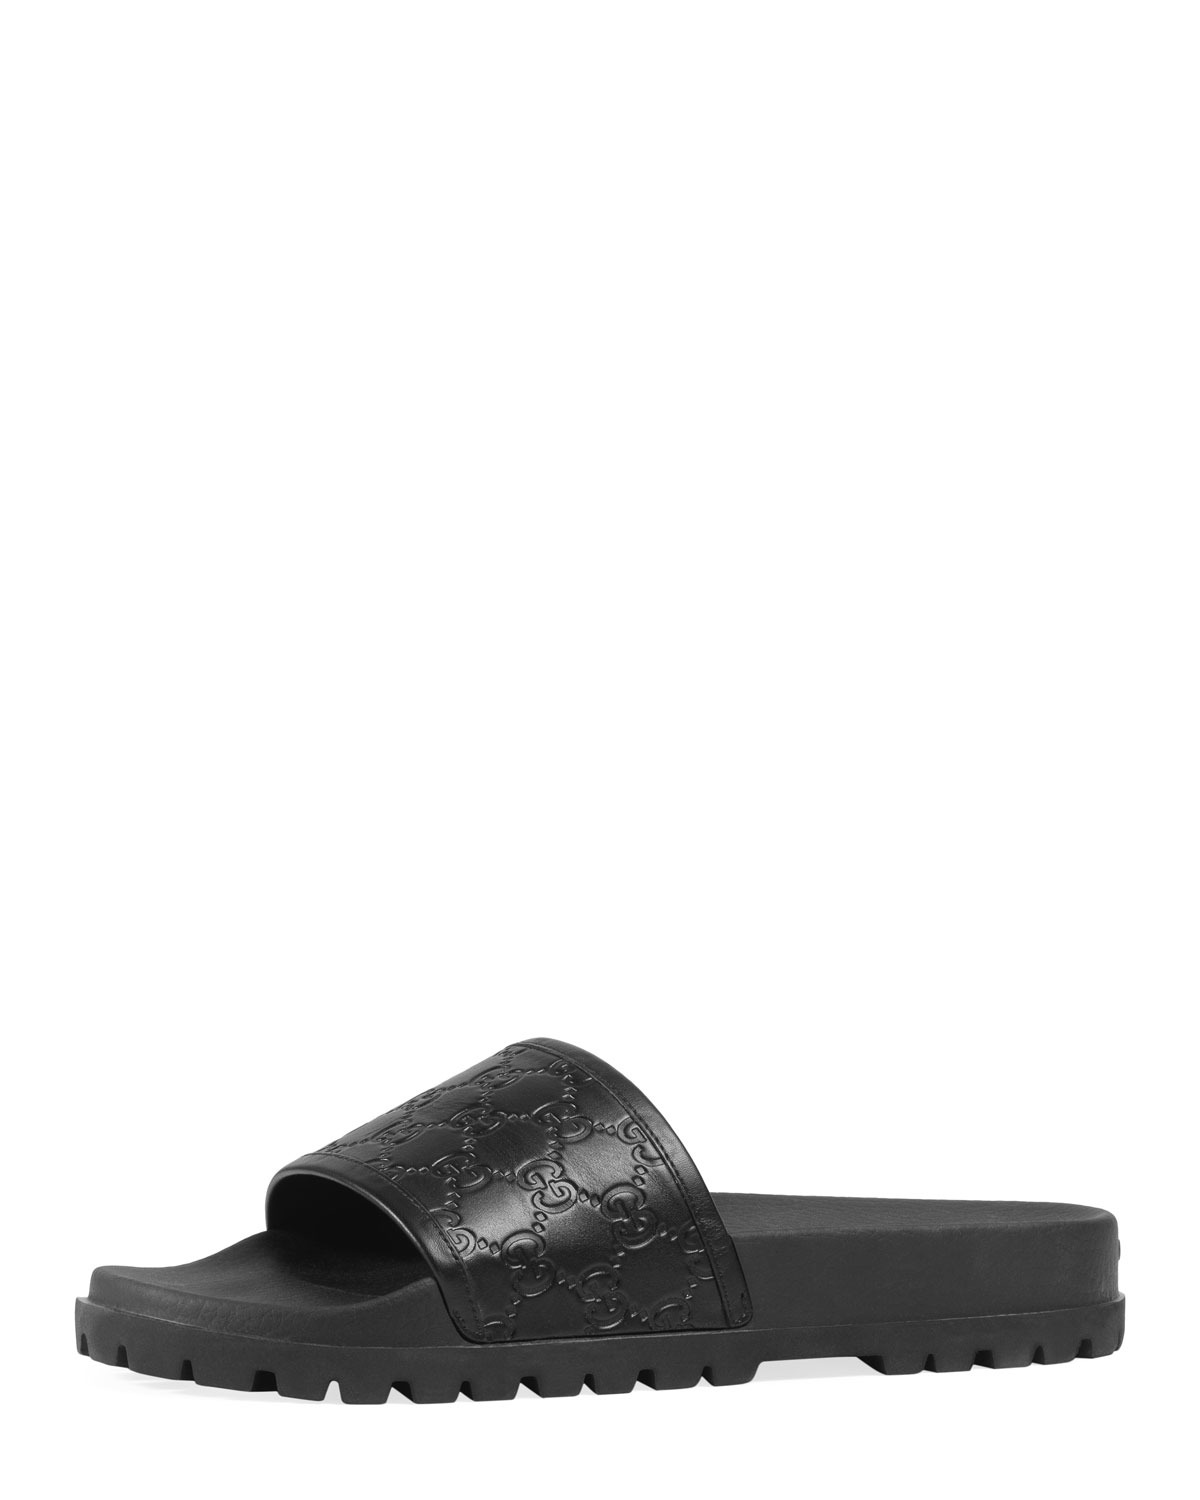 f3e81a125647cd Gucci Signature Slide Sandal